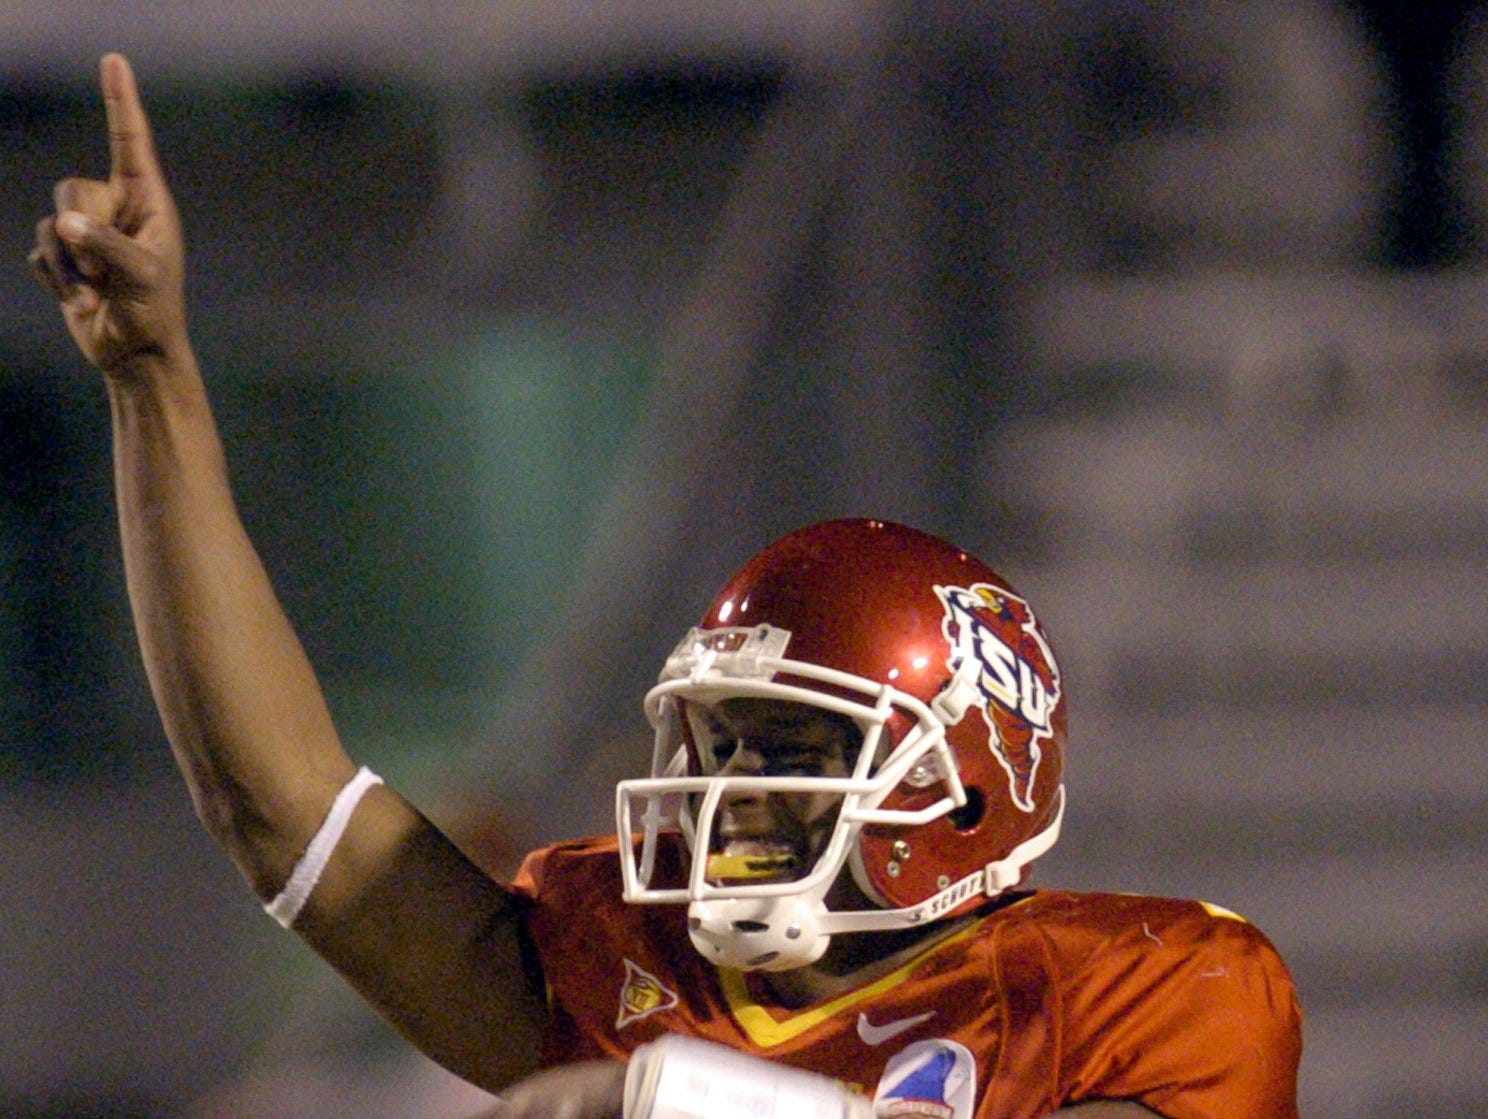 Iowa State quarterback Bret Meyer earned offensive MVP honors after a 122-yard rushing day to go with his 114 passing yards in the 2004 Independence Bowl.